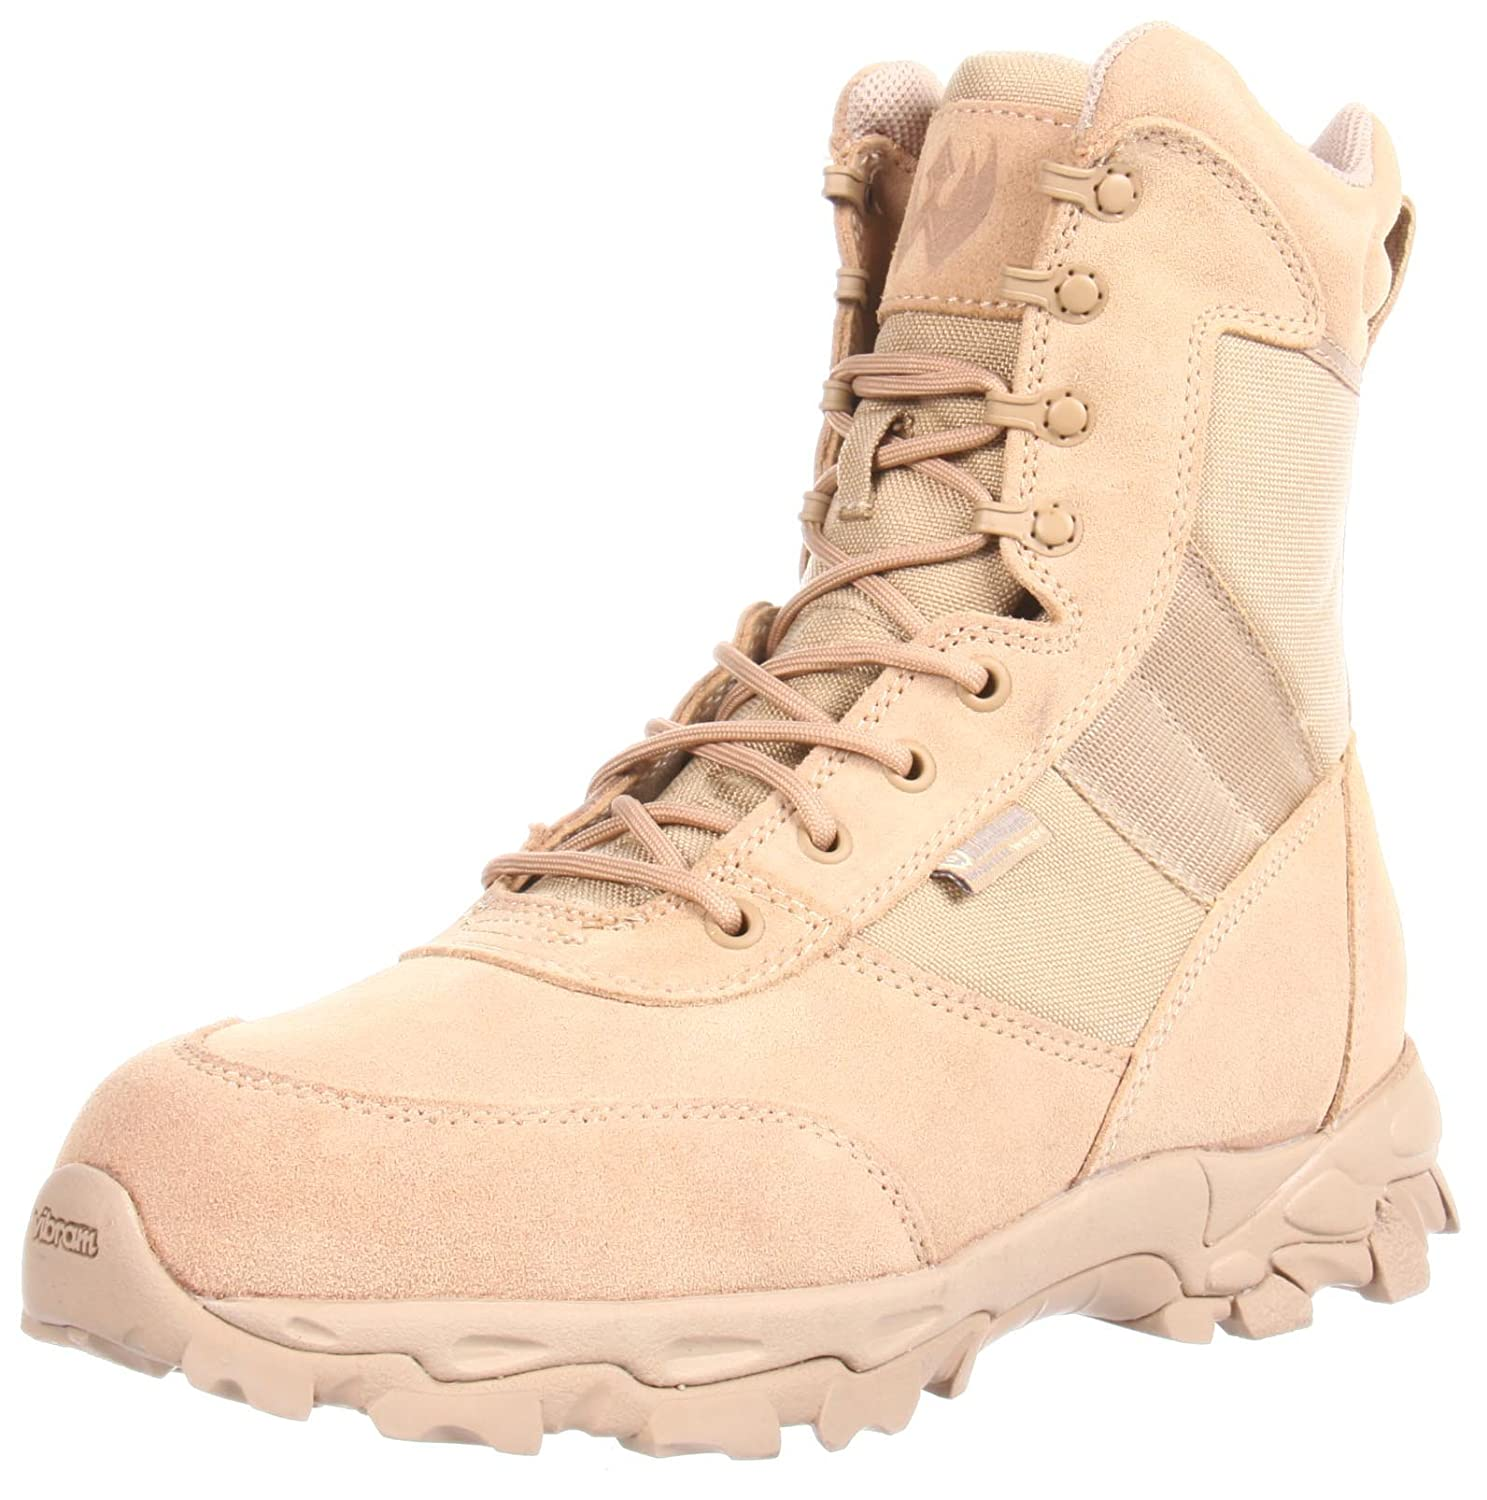 Amazon blackhawk mens warrior wear desert ops boots shoes publicscrutiny